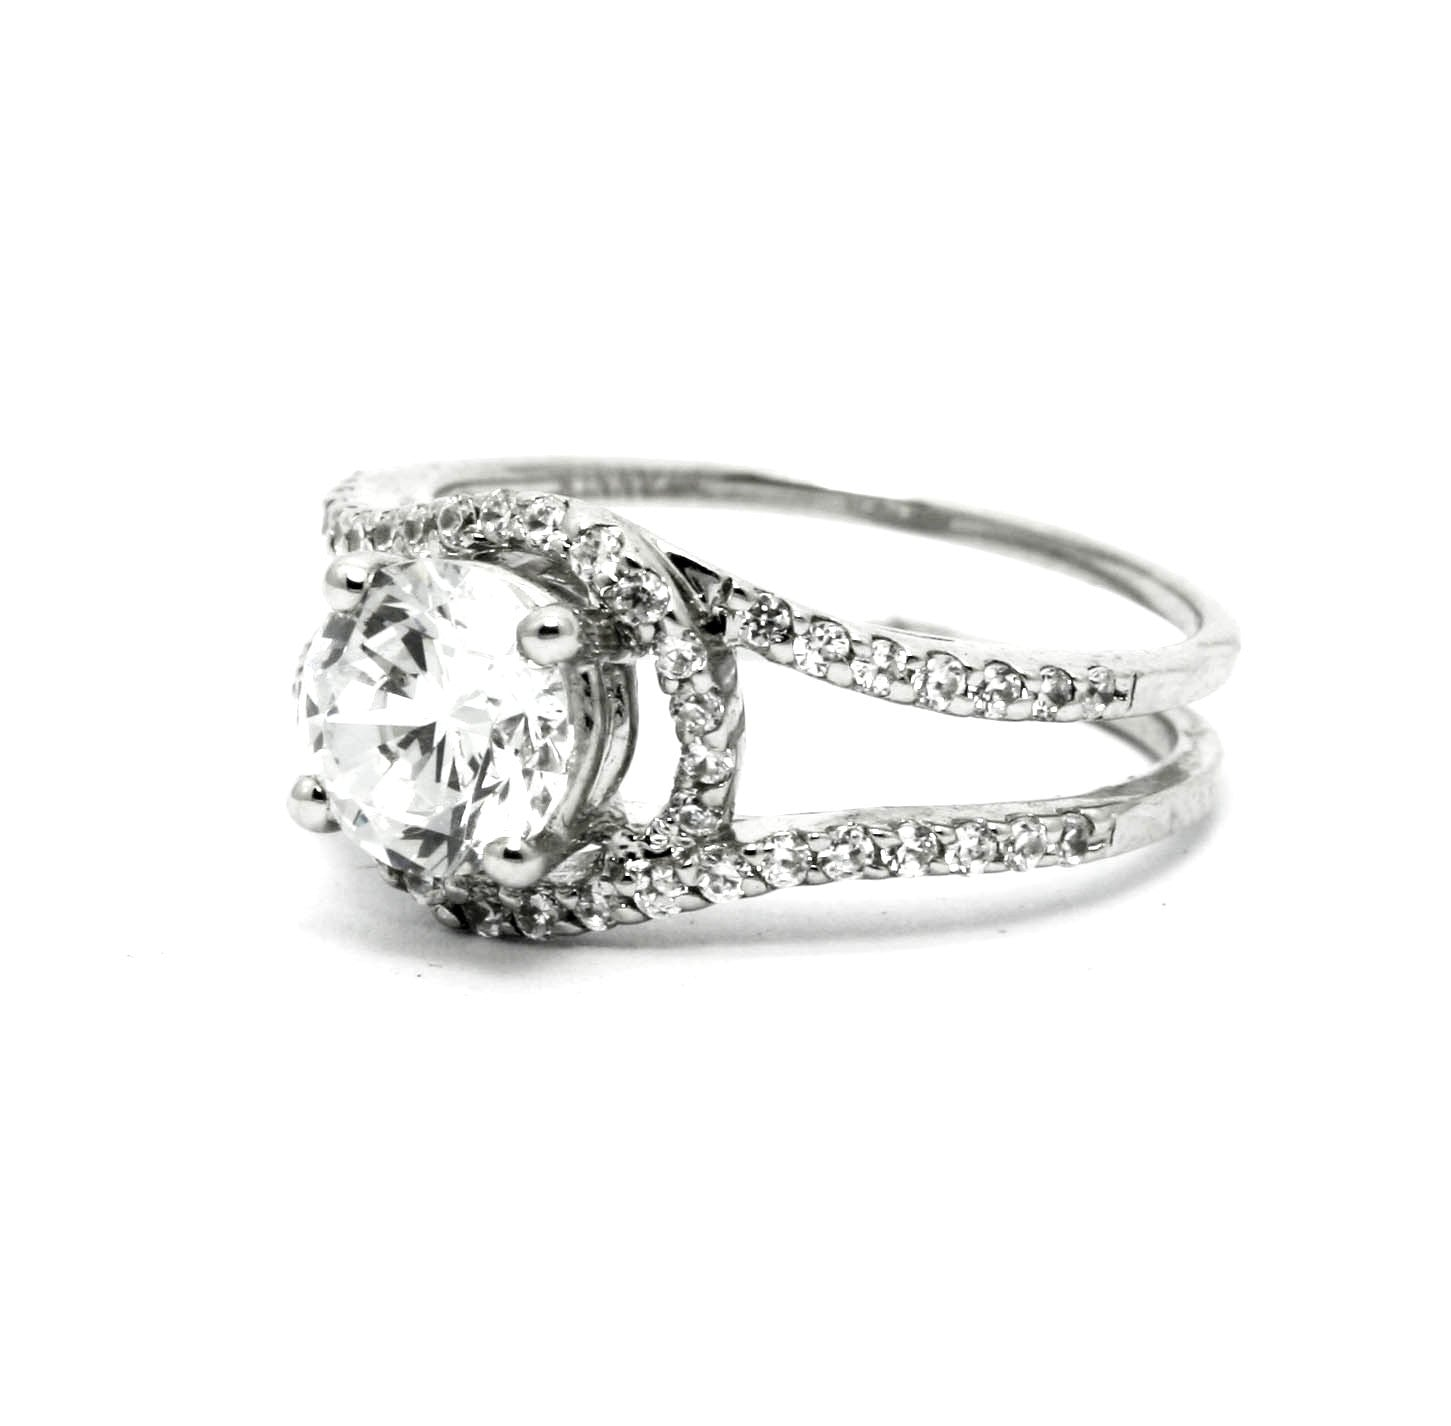 Unique 1.25 Carat (7 mm) Forever Brilliant Moissanite Floating Halo Engagement Ring With .47 Carat White Diamonds, Split Shank - FBY11580SE